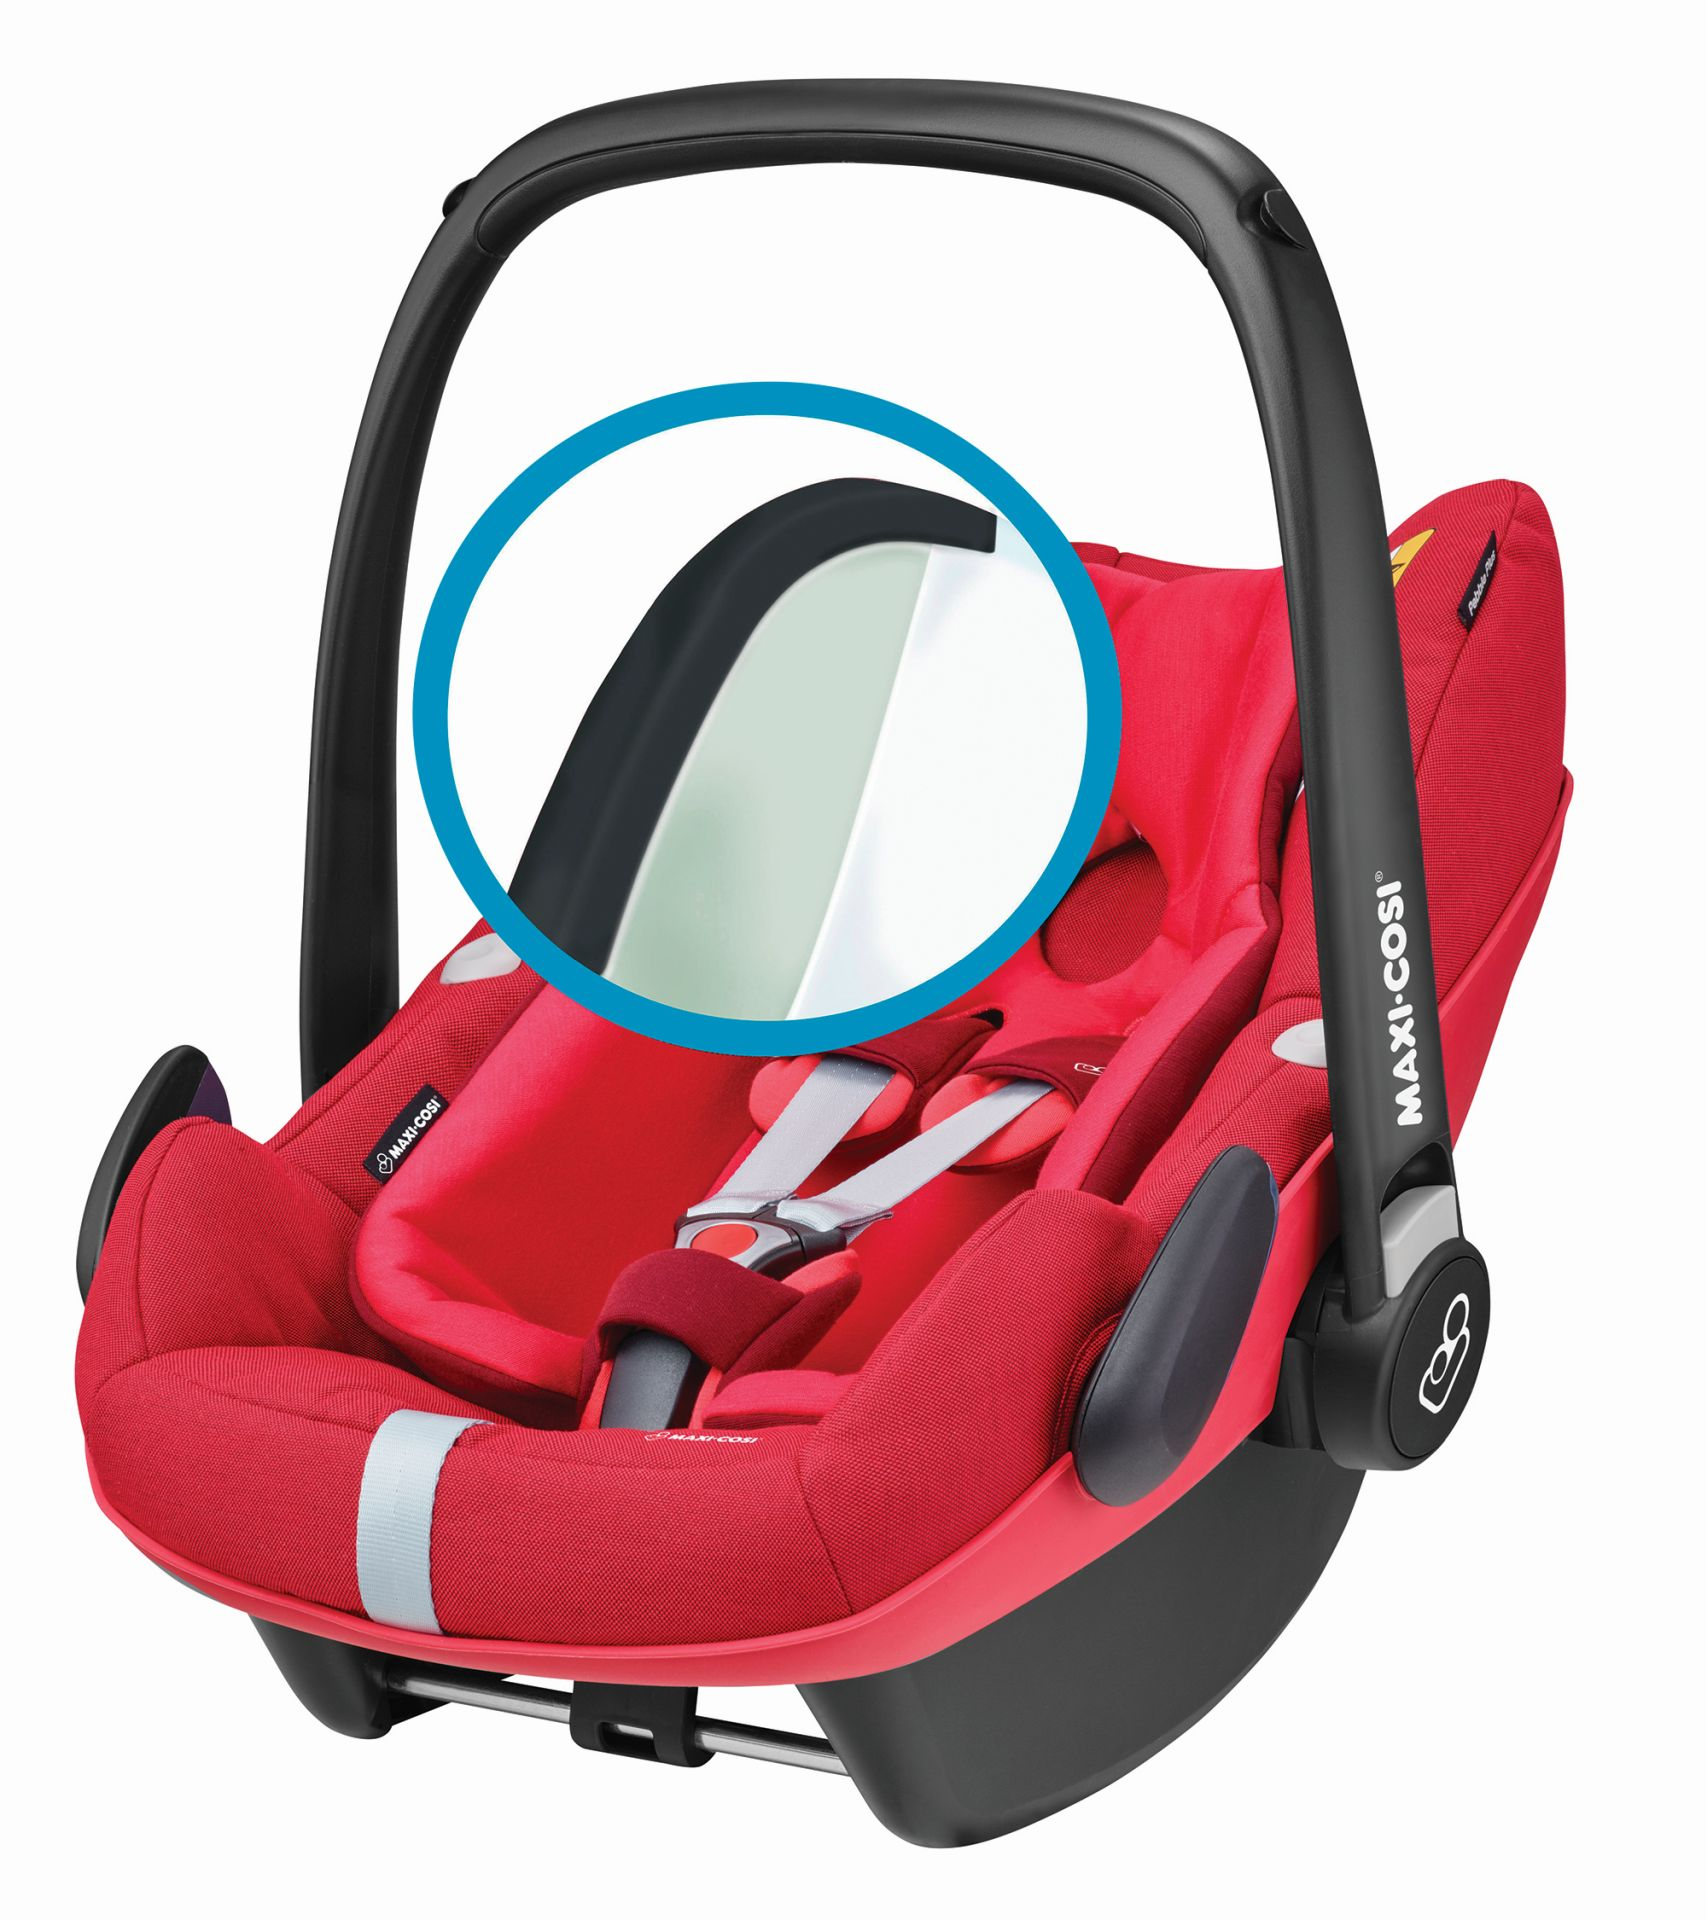 maxi cosi infant car seat pebble plus 2018 vivid red buy. Black Bedroom Furniture Sets. Home Design Ideas